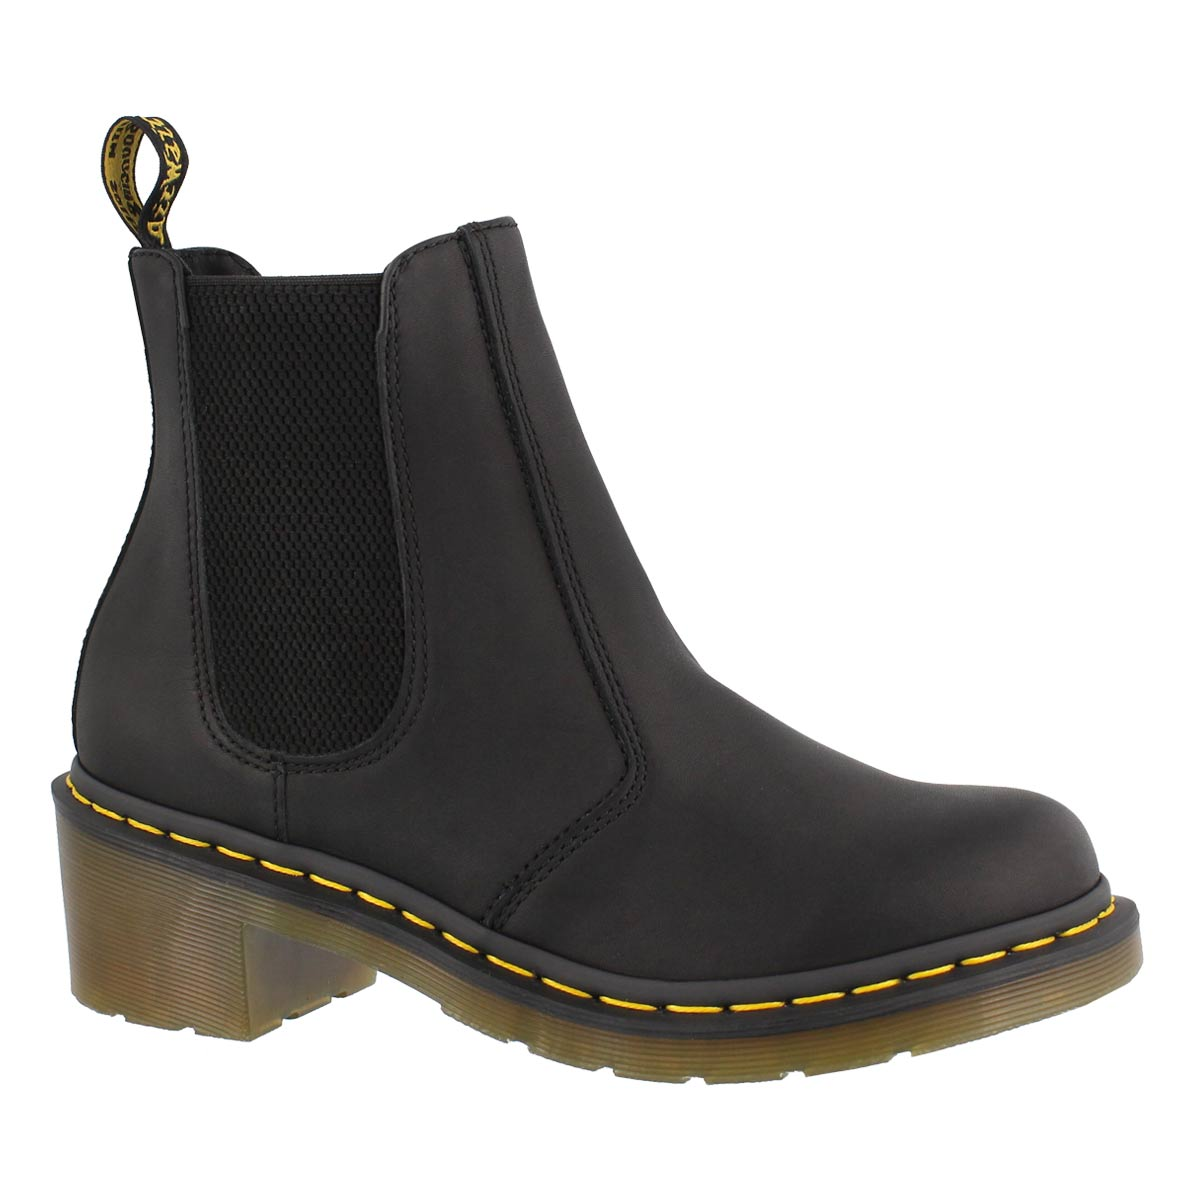 Women's CADENCE black chelsea boots